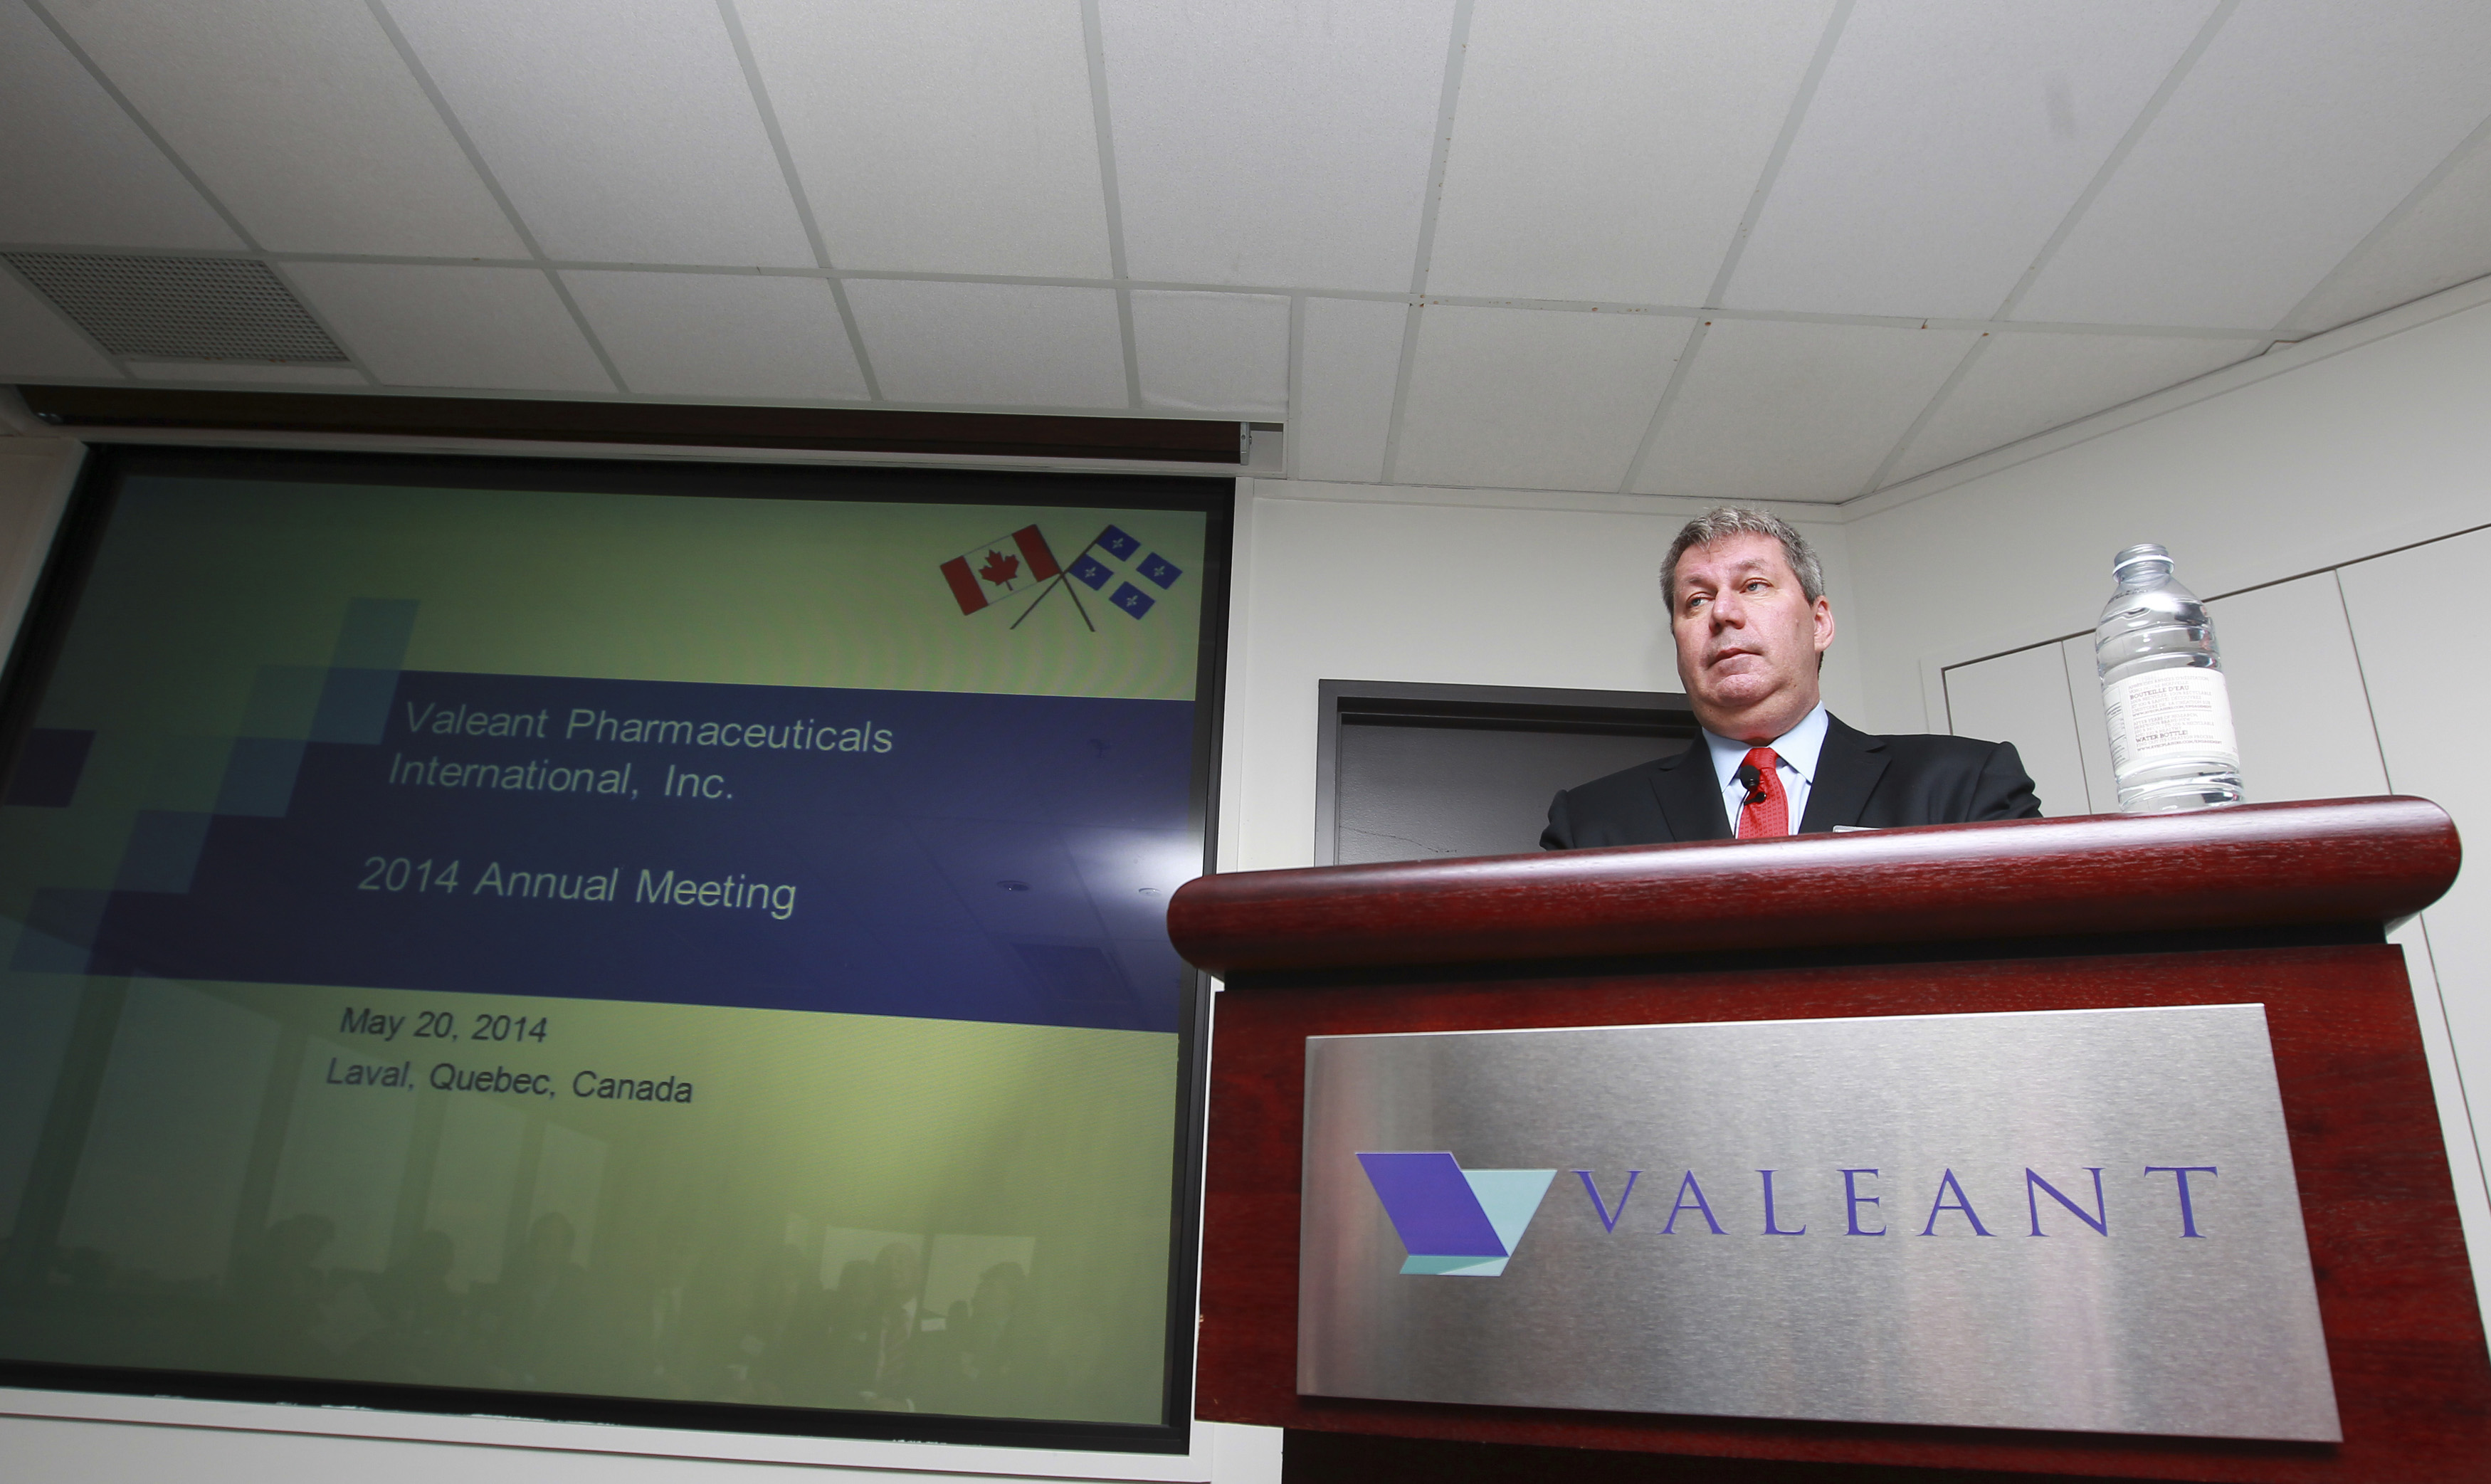 J. Michael Pearson, Chairman of the board and Chief Executive Officer of Valeant Pharmaceuticals International Inc., speaks during their annual general meeting in Laval, Quebec